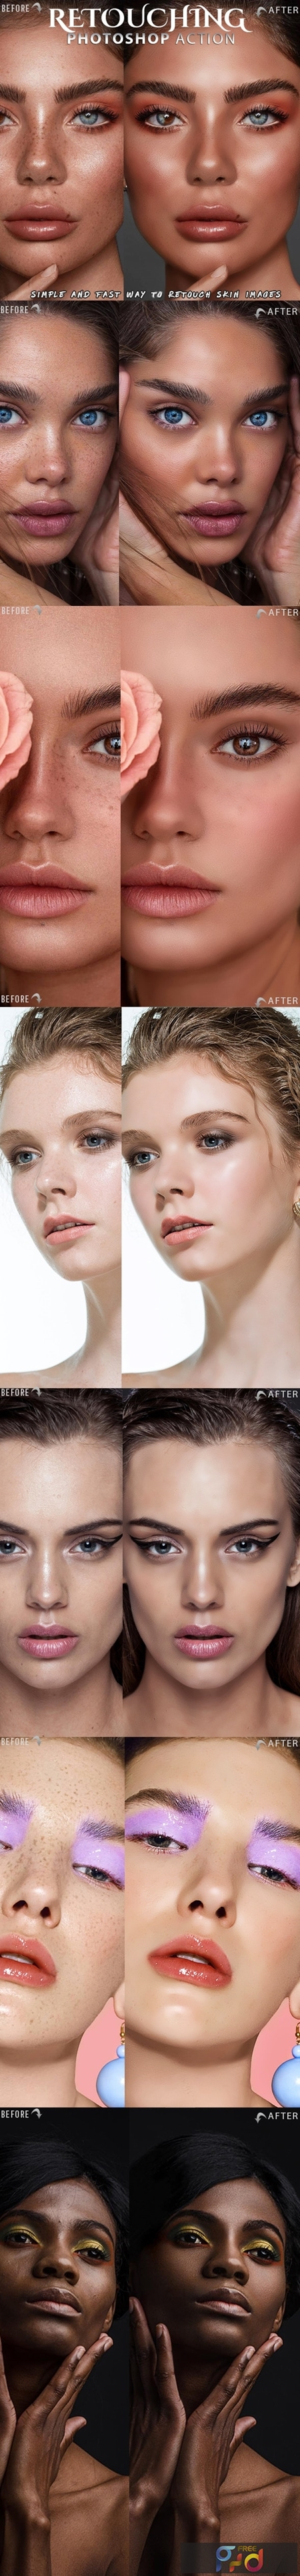 Skin Retouch Photoshop Action 25828641 1